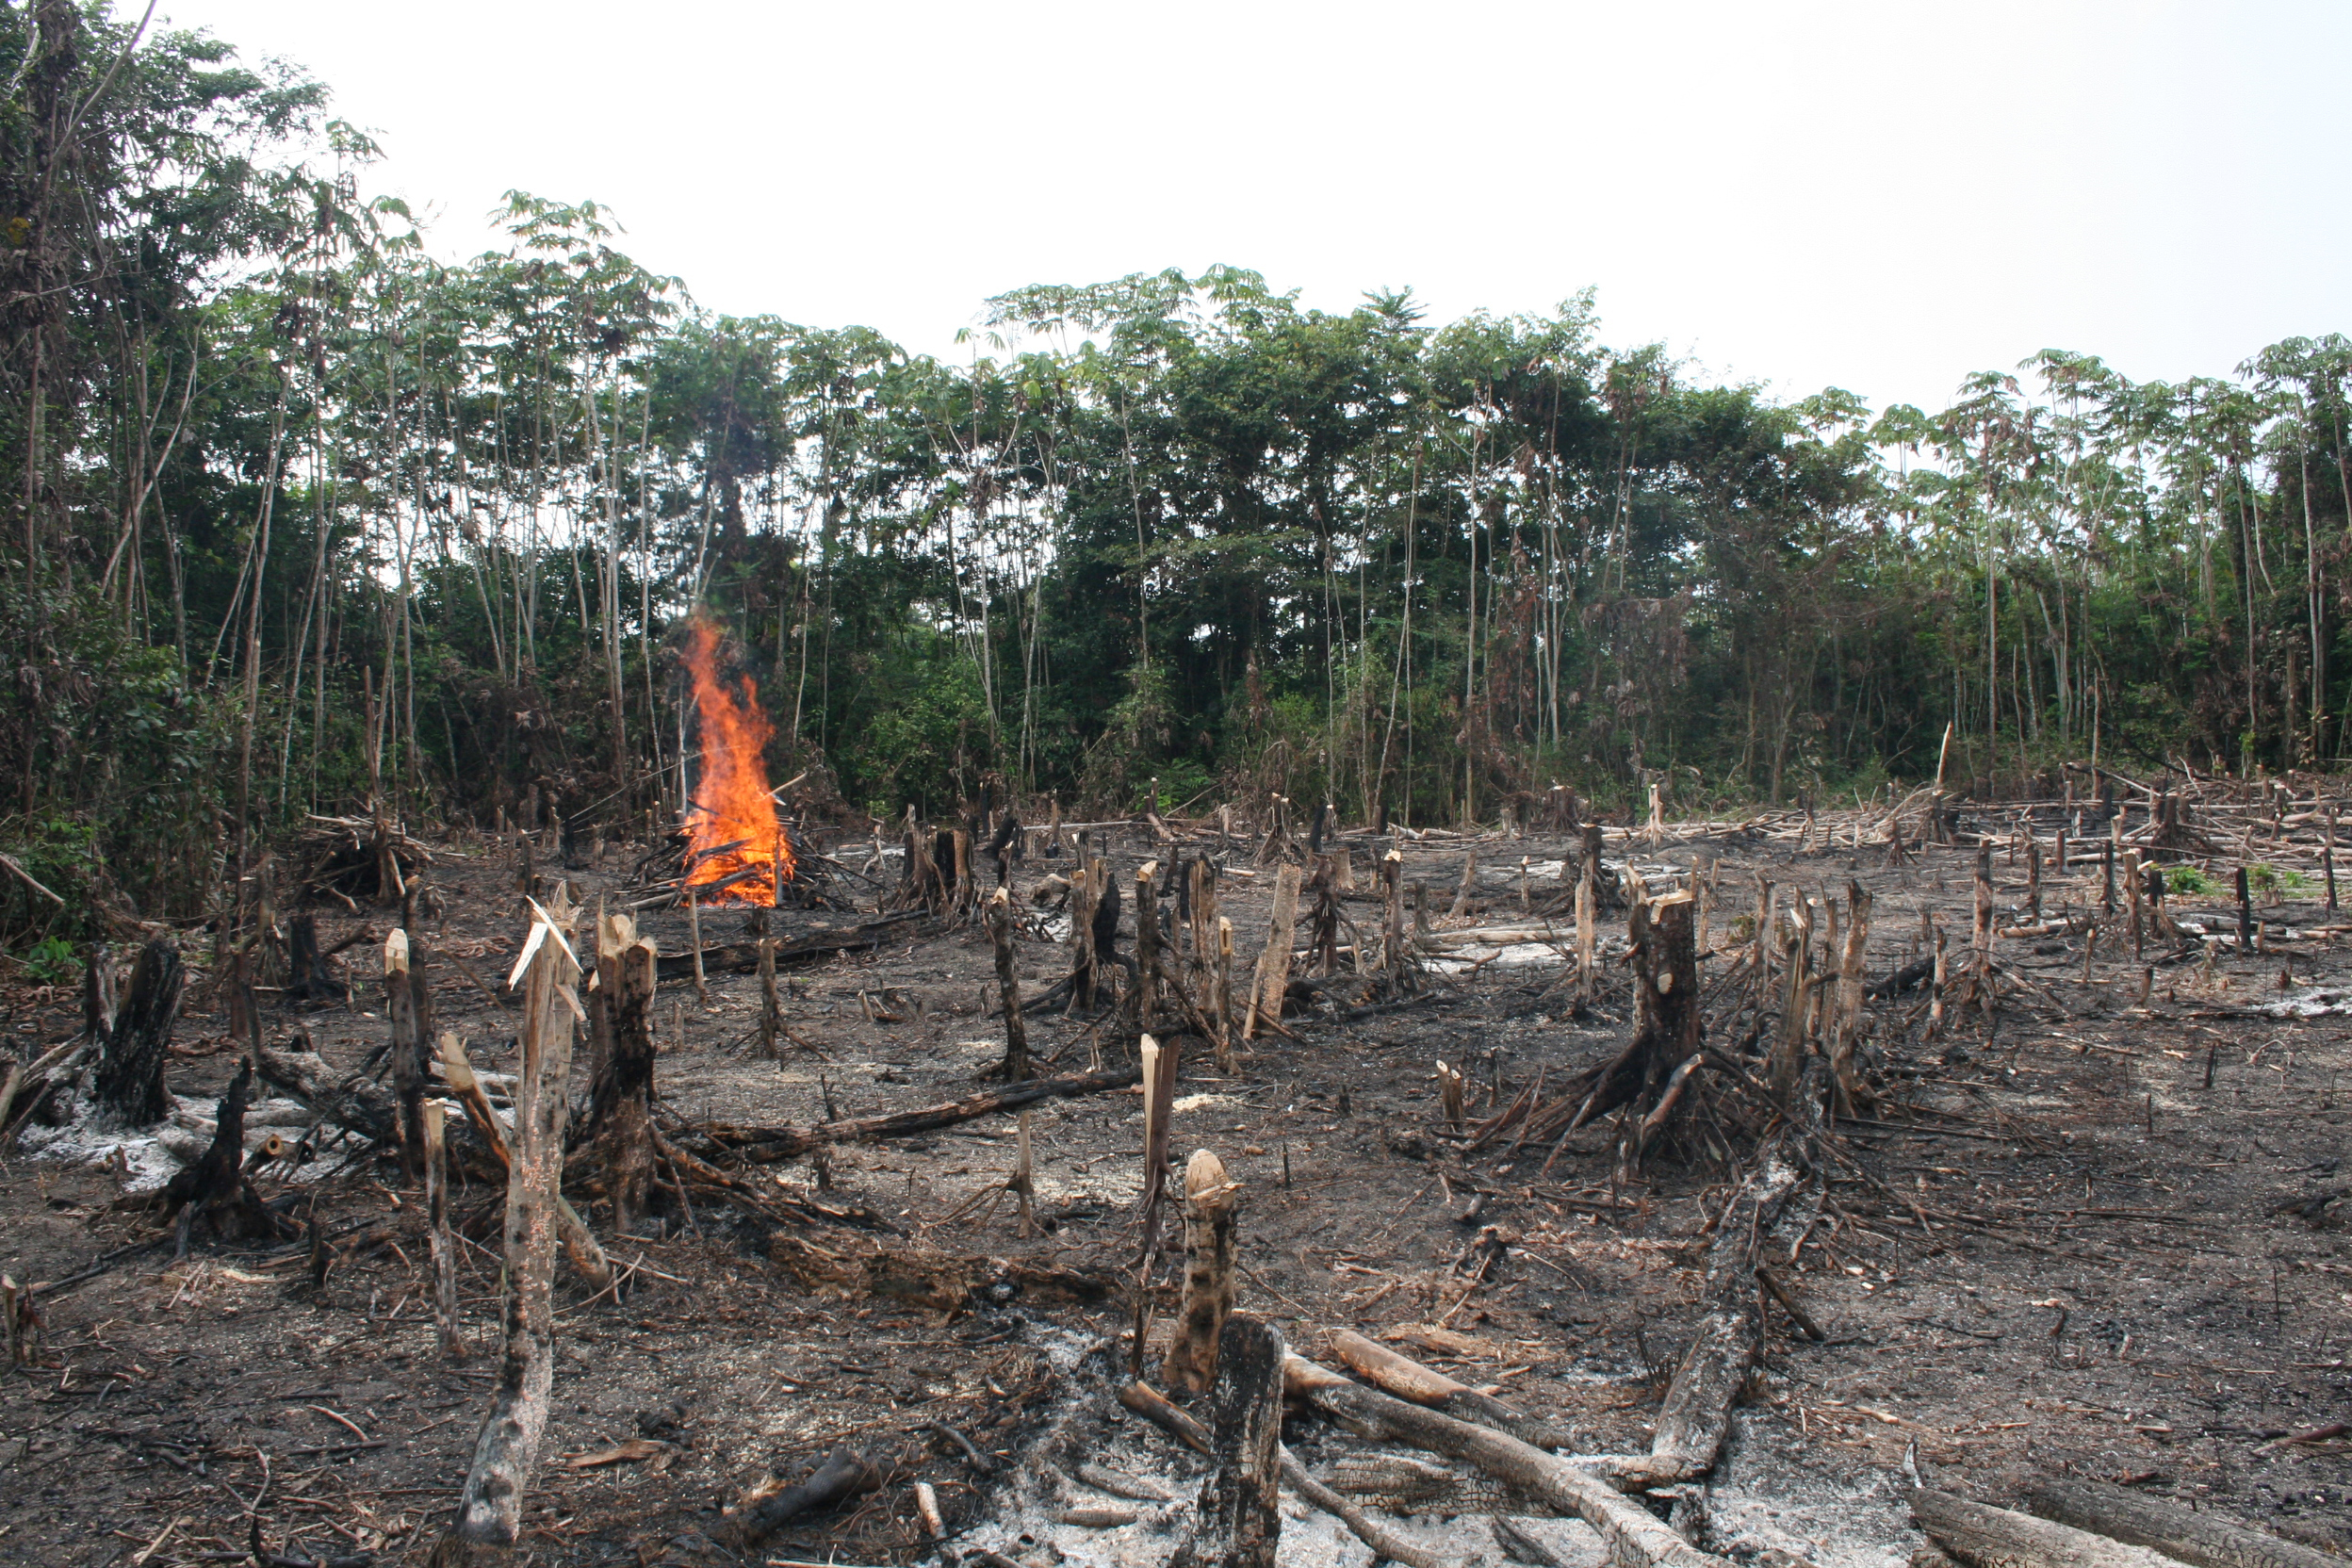 Deforestation is cause by wild fires and or logging